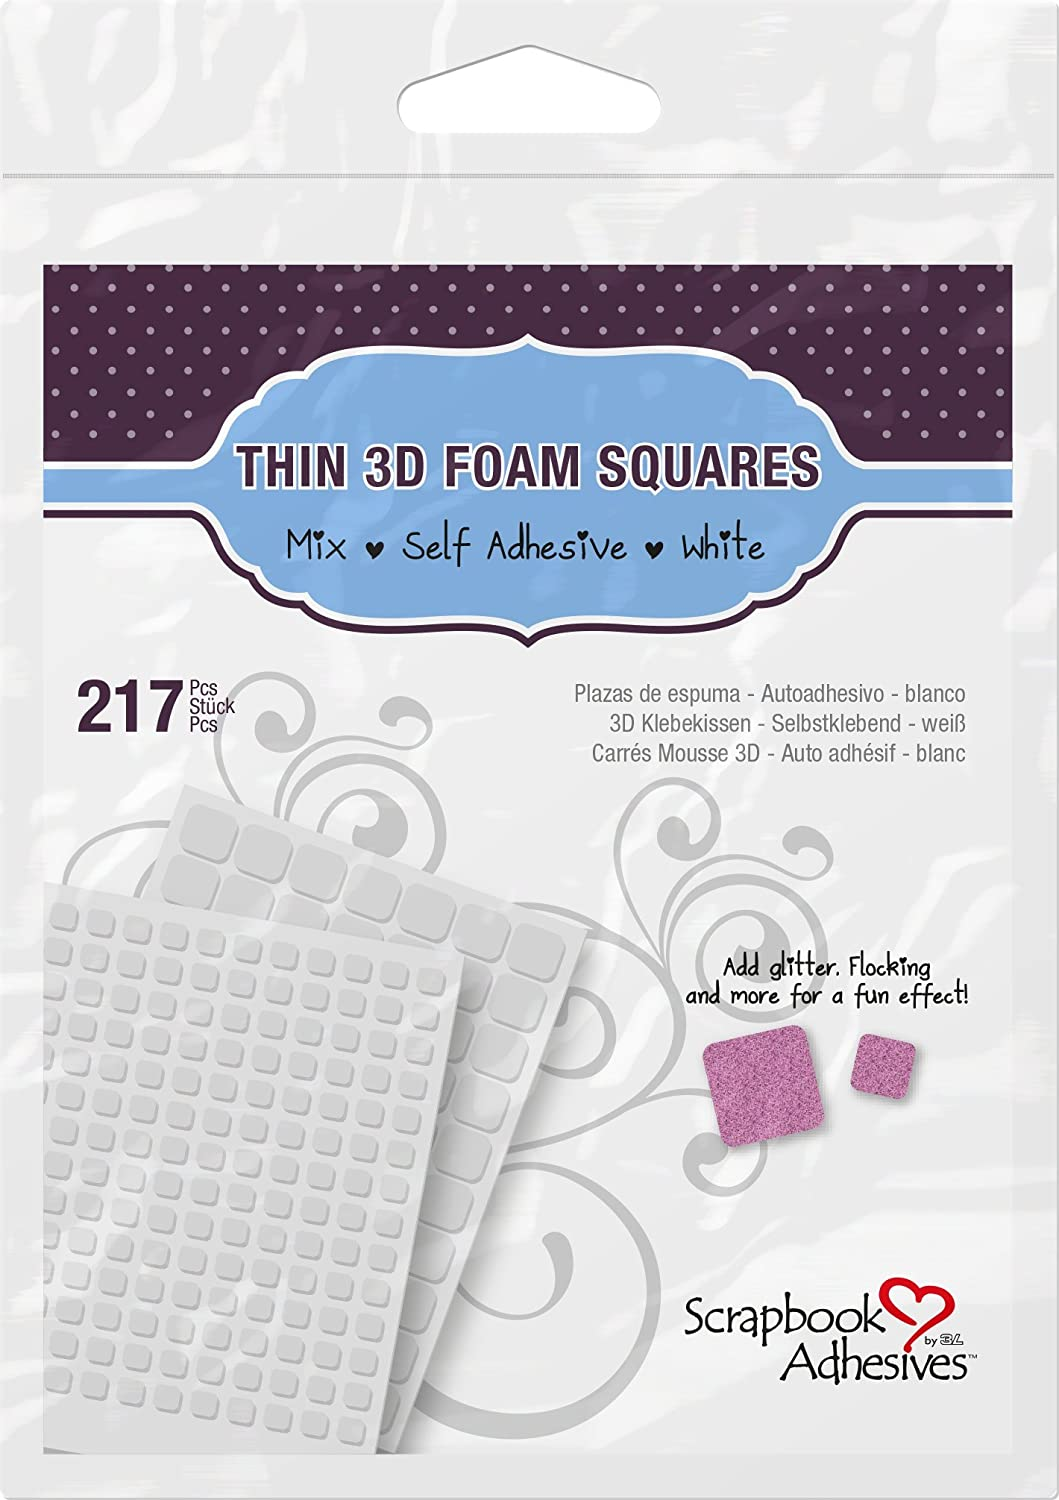 Scrapbook Adhesives by 3L 01616-MP Permanent Thin Pre-Cut 3D Foam Squares (217 Pack) (Set of 10), White